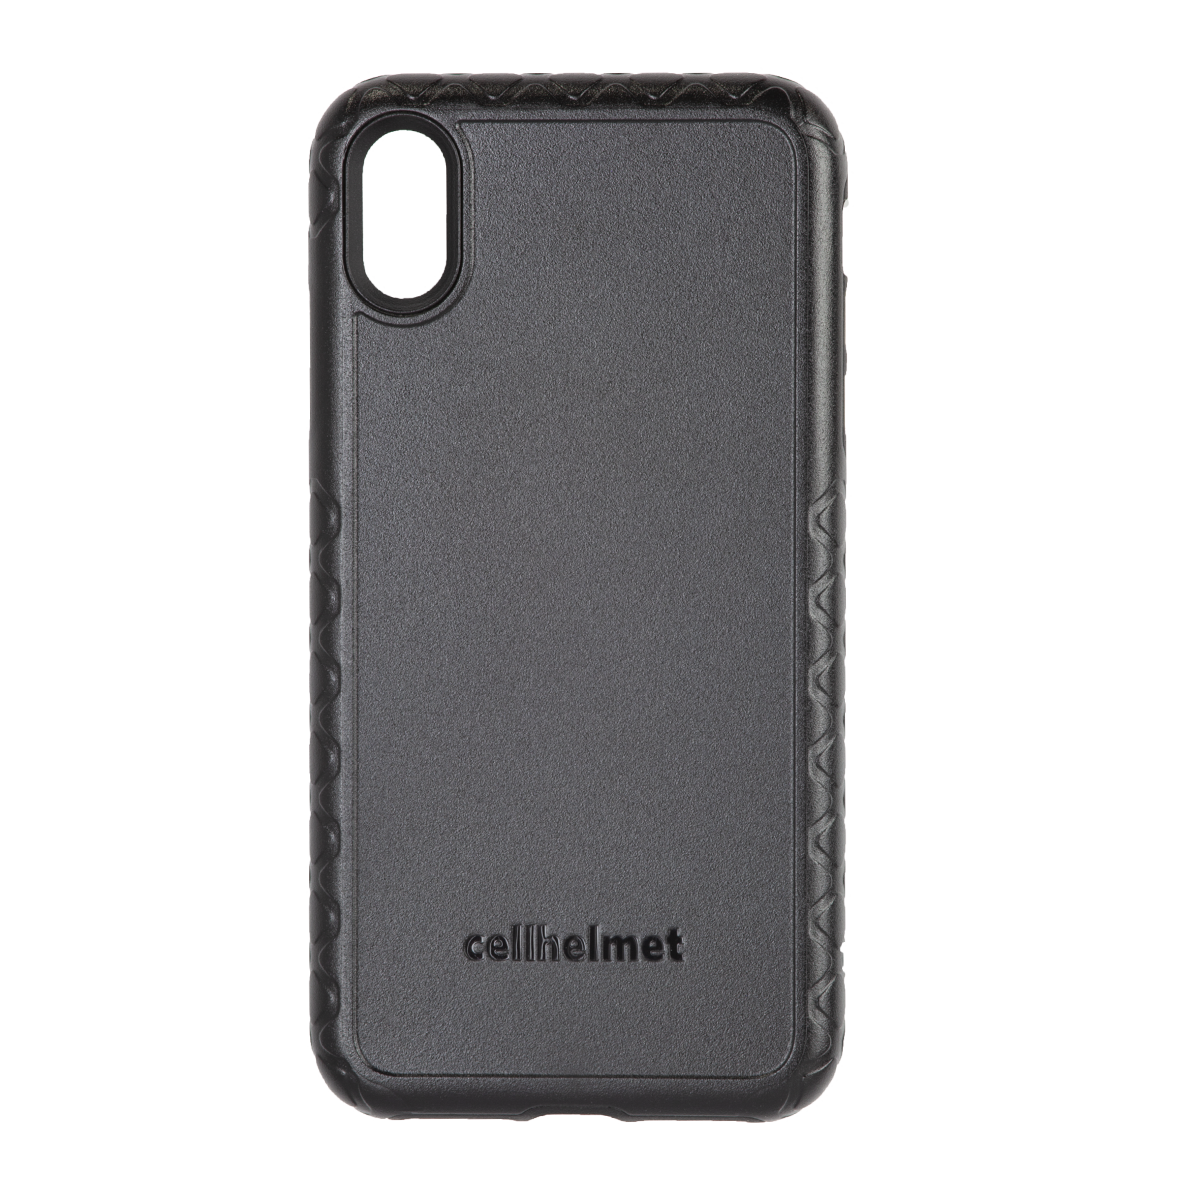 the onyx iphone xs case